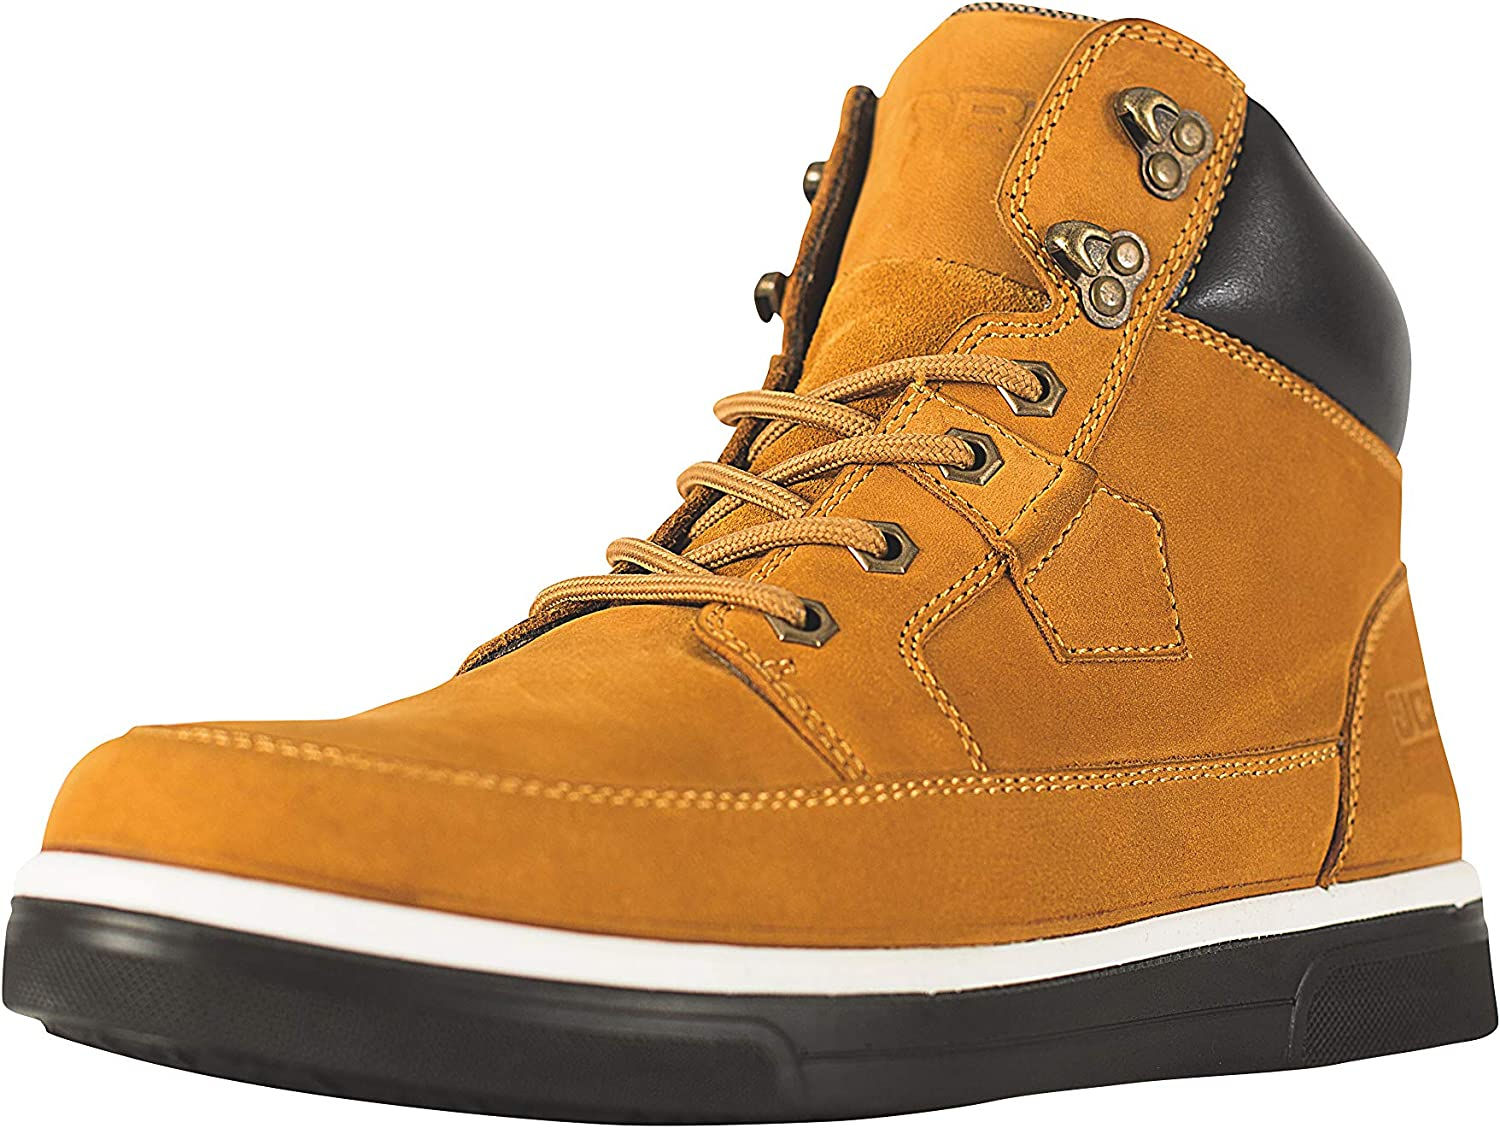 JCB 4CX H Honey Yellow Cow Nubuck Safety Hiker with Kevlar Midsole, Mens, Size 6